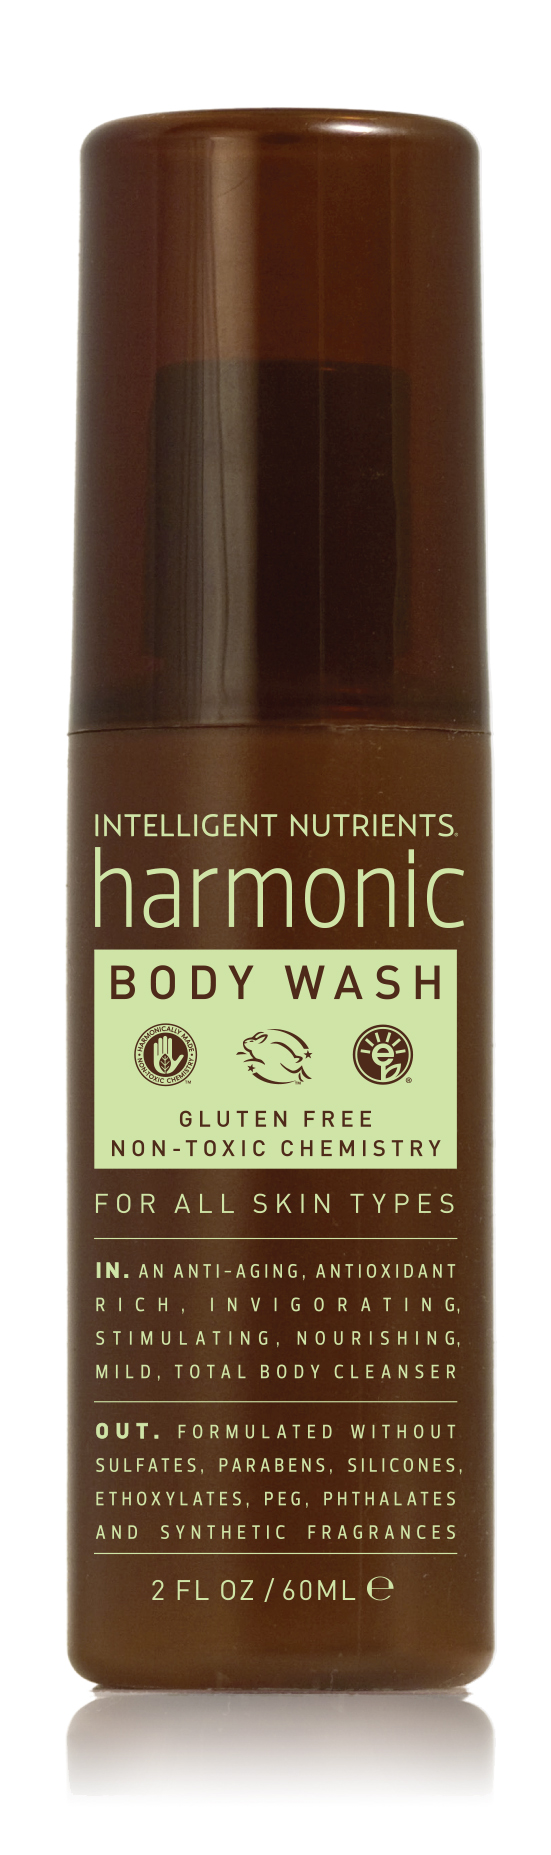 Harmonic Body Wash (DKK70/60ml)